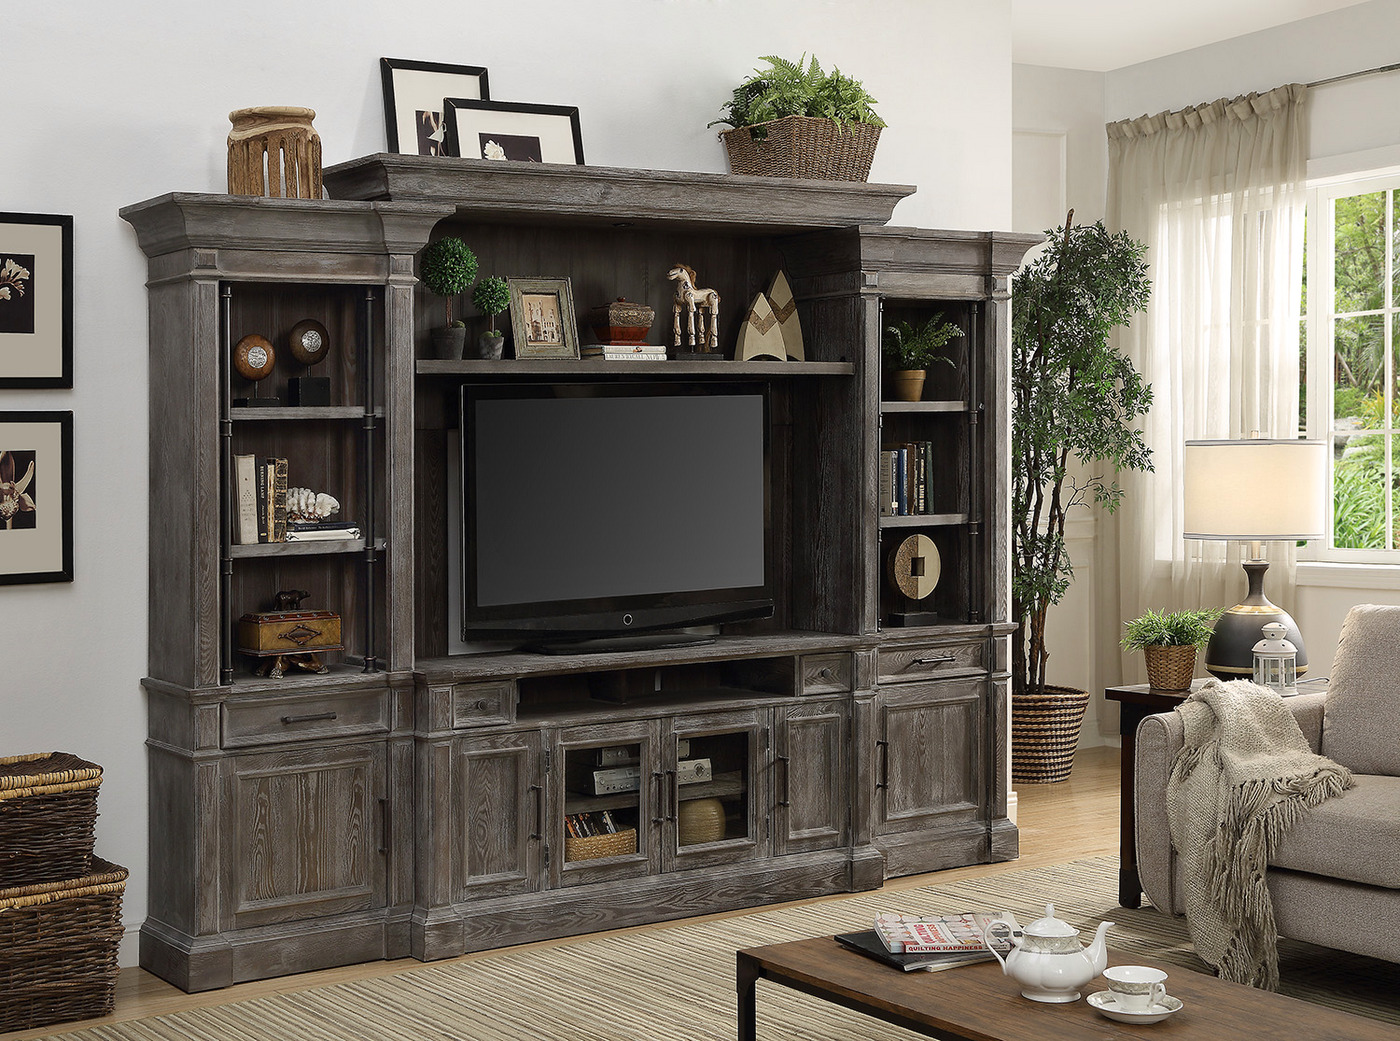 Gramercy Park Rustic Entertainment Wall Unit In Vintage Burnished Smoke  Finish